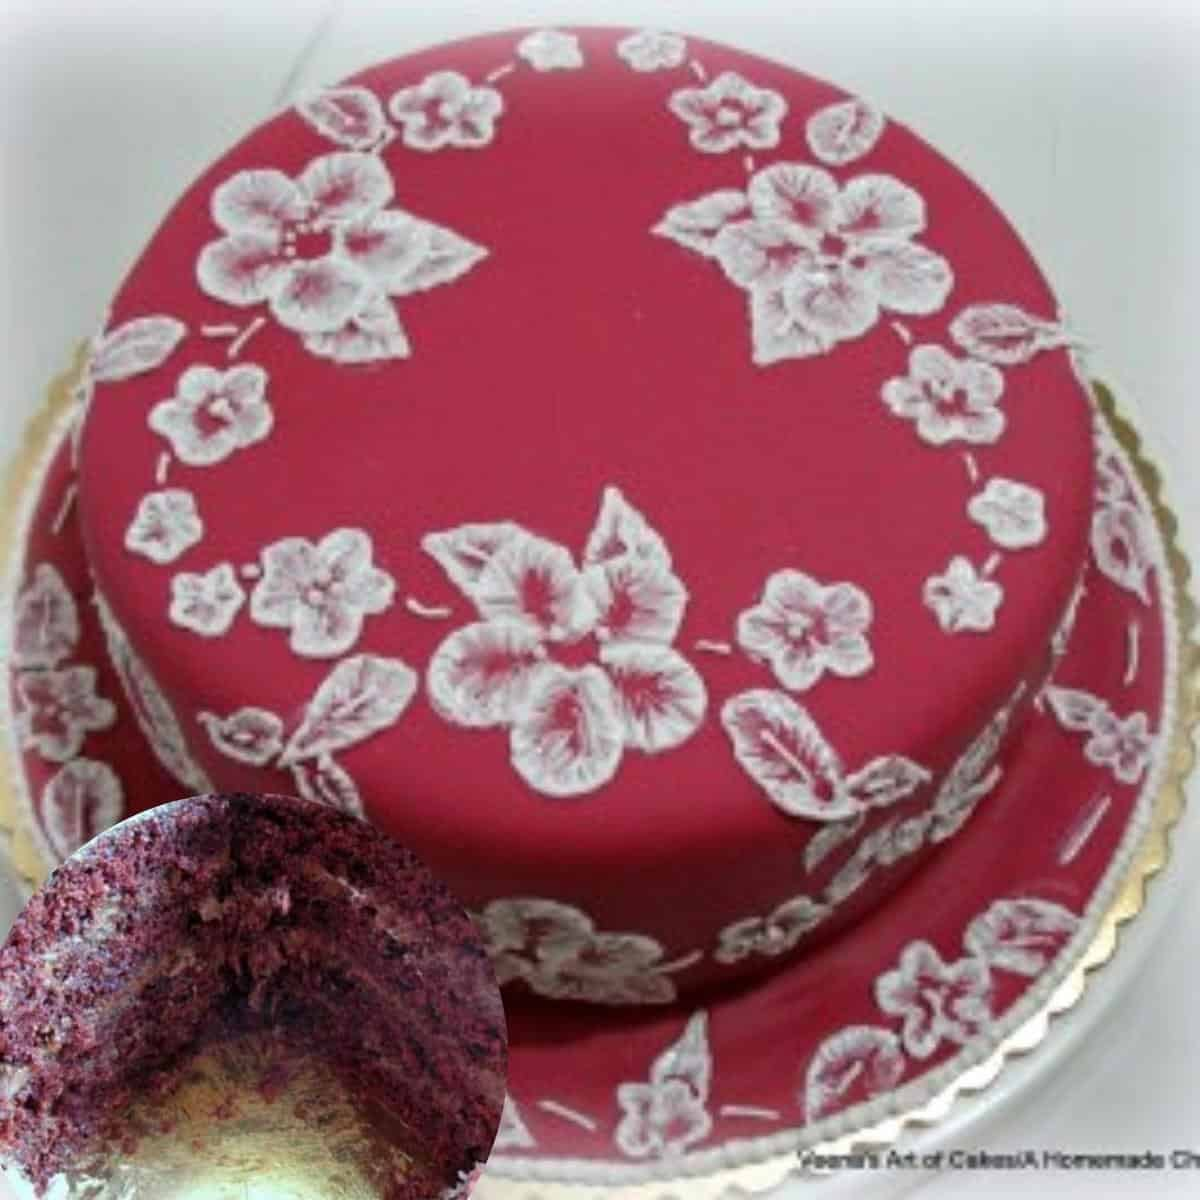 A brush embroidery cake with red velvet and IMBC.